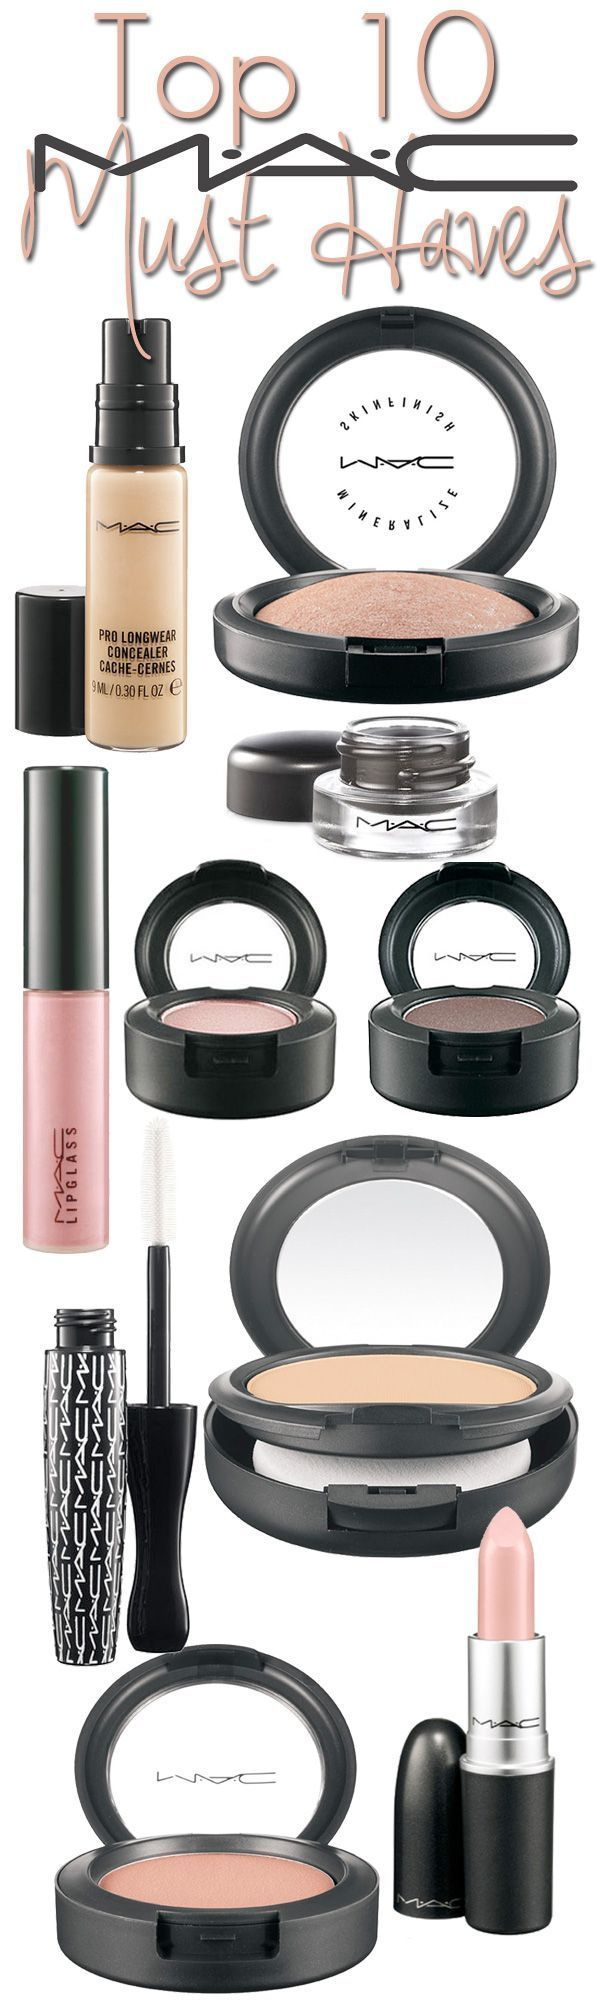 Top 10 Mac Must Haves The Makeup Products You Need In Your Collection